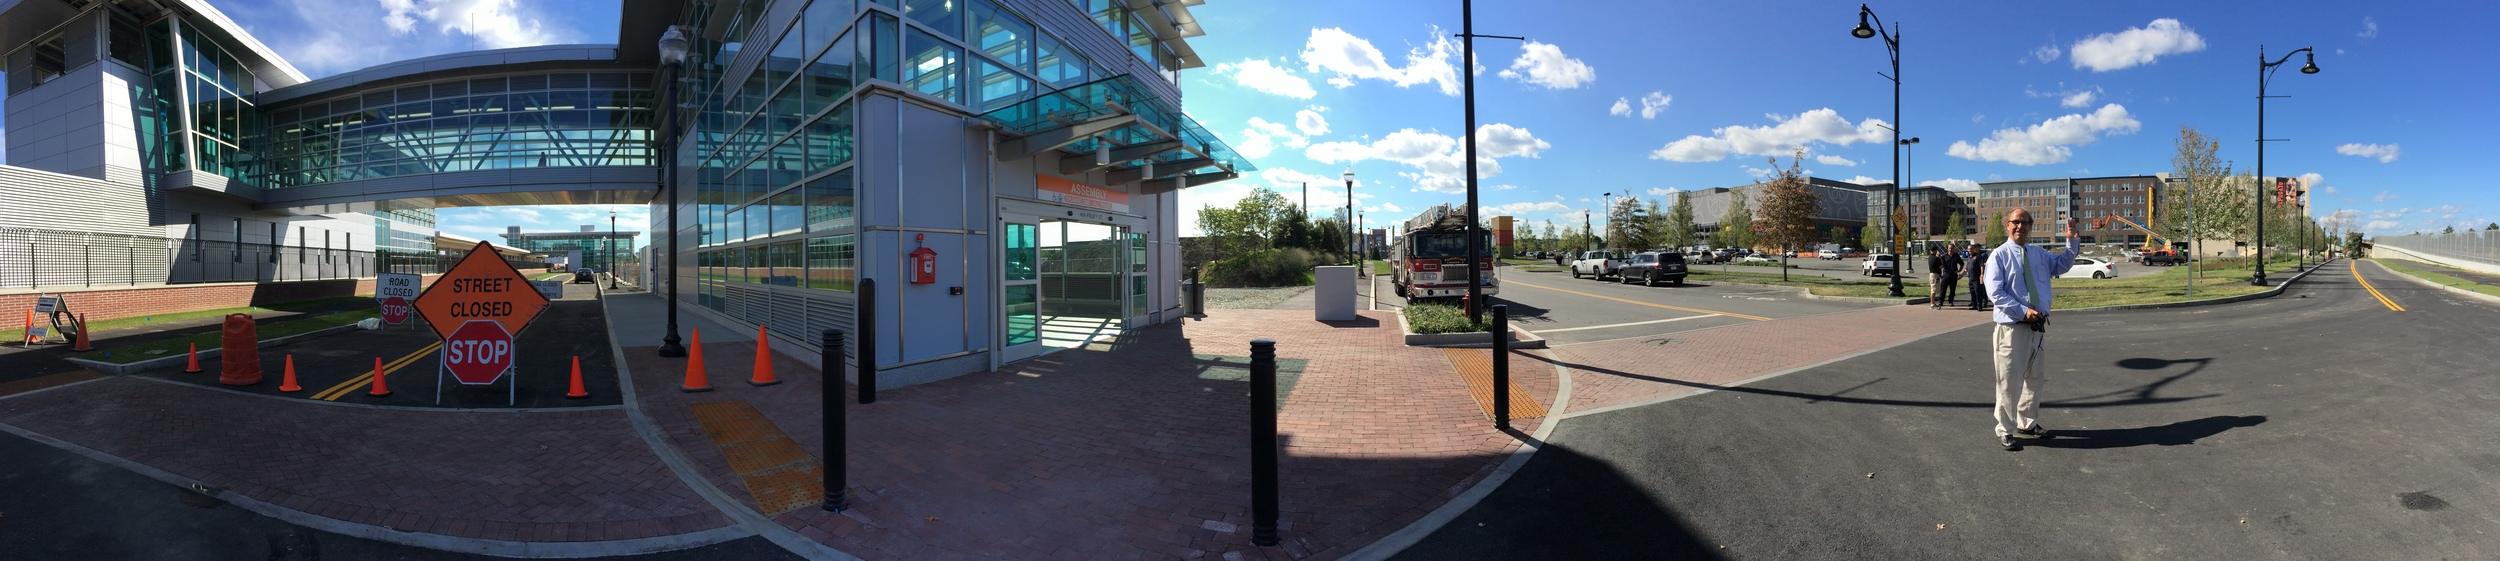 A panorama of the area awaiting development around the unfinished Assembly station entrance with Wig Zamore of the  MBTA Rider Oversight Committee  and chair of the  Union Square Civic Advisory Committee .